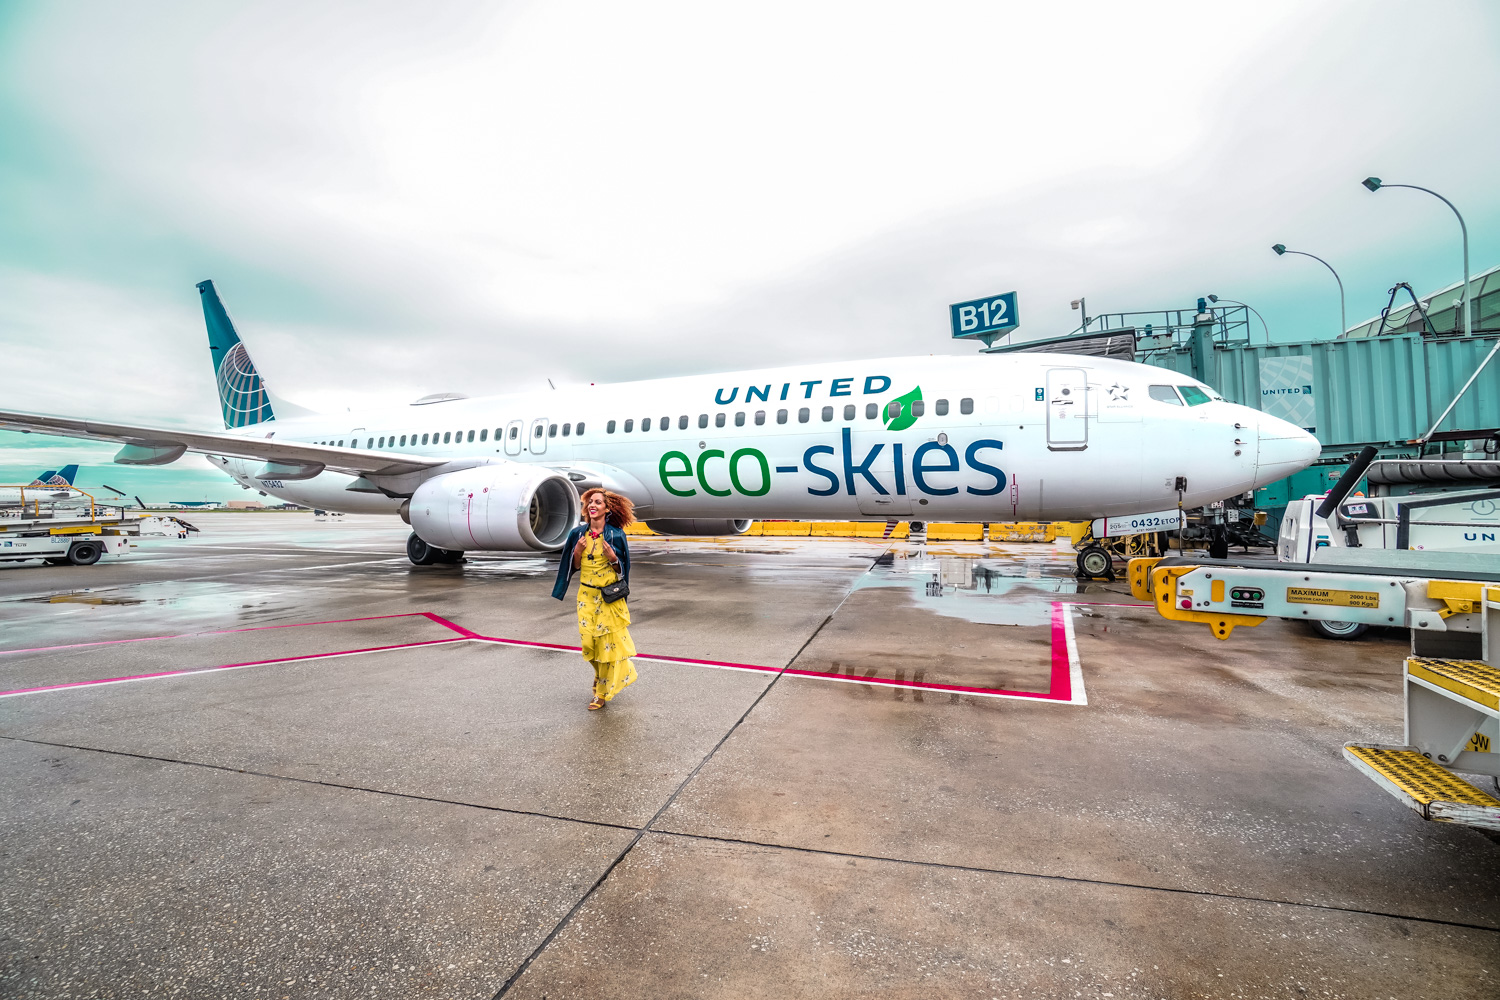 I Flew On The Most Eco-Friendly Flight in History